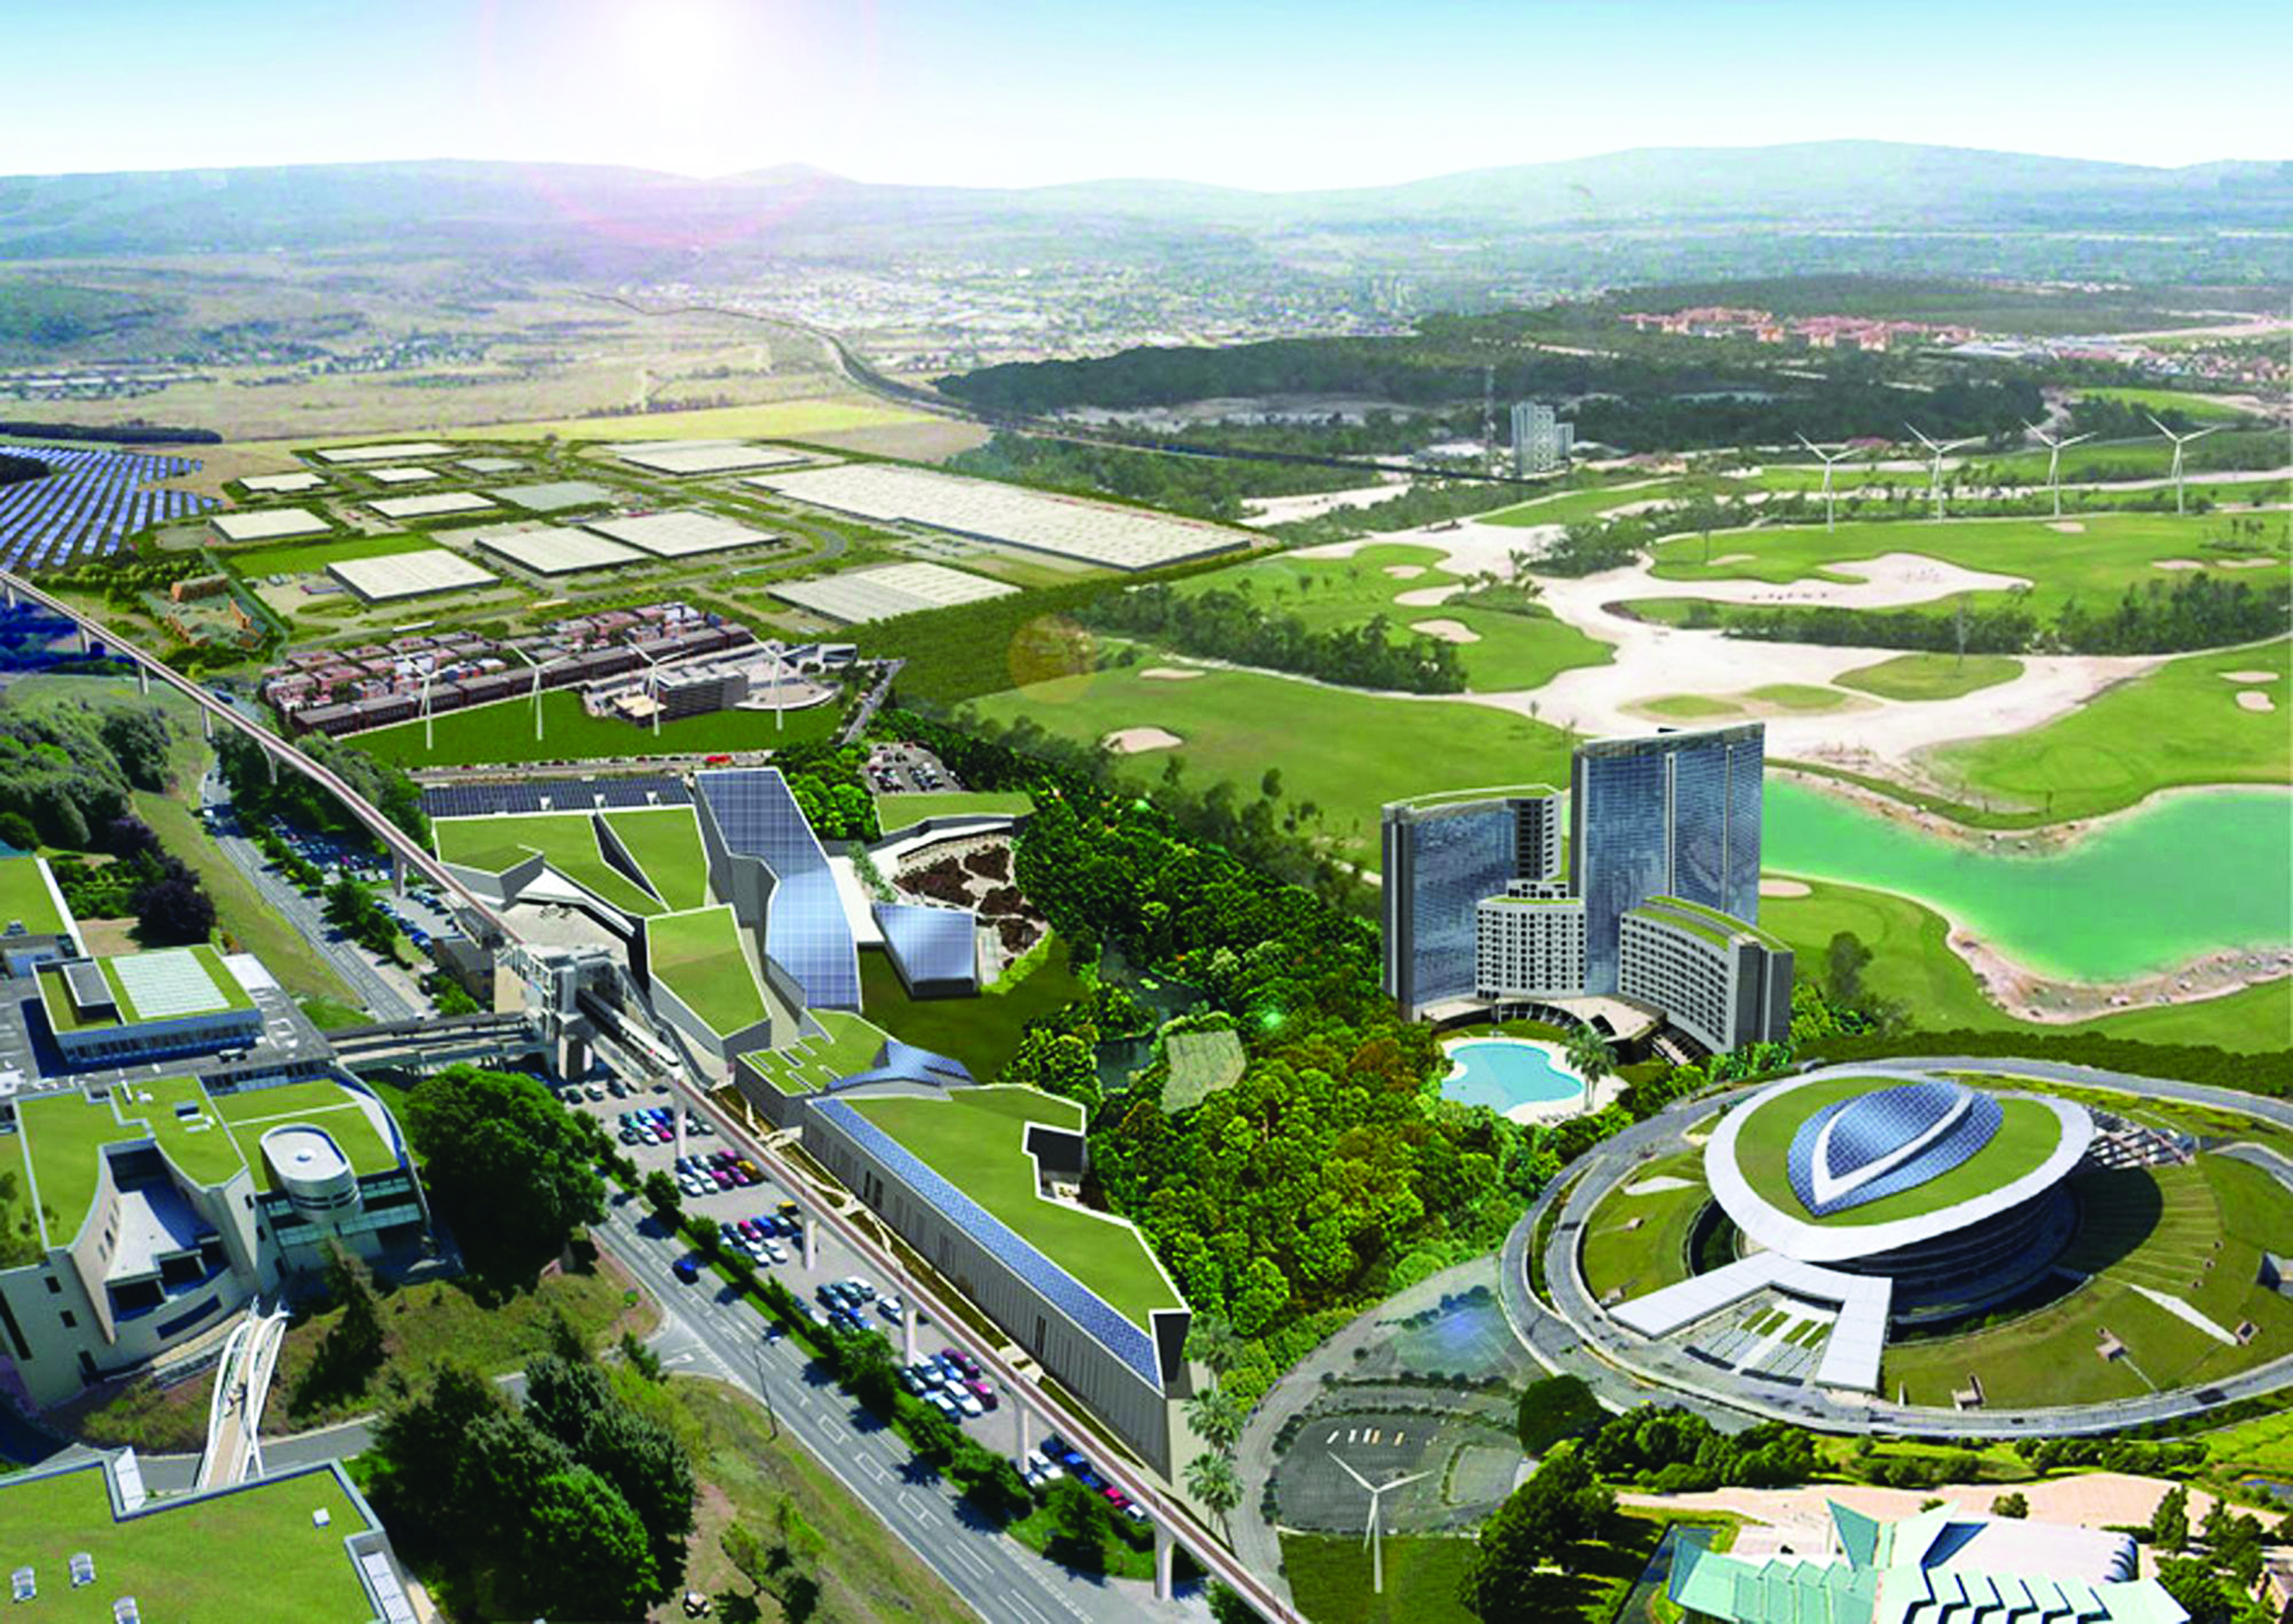 Tatu City symbolises woes of foreign direct investment